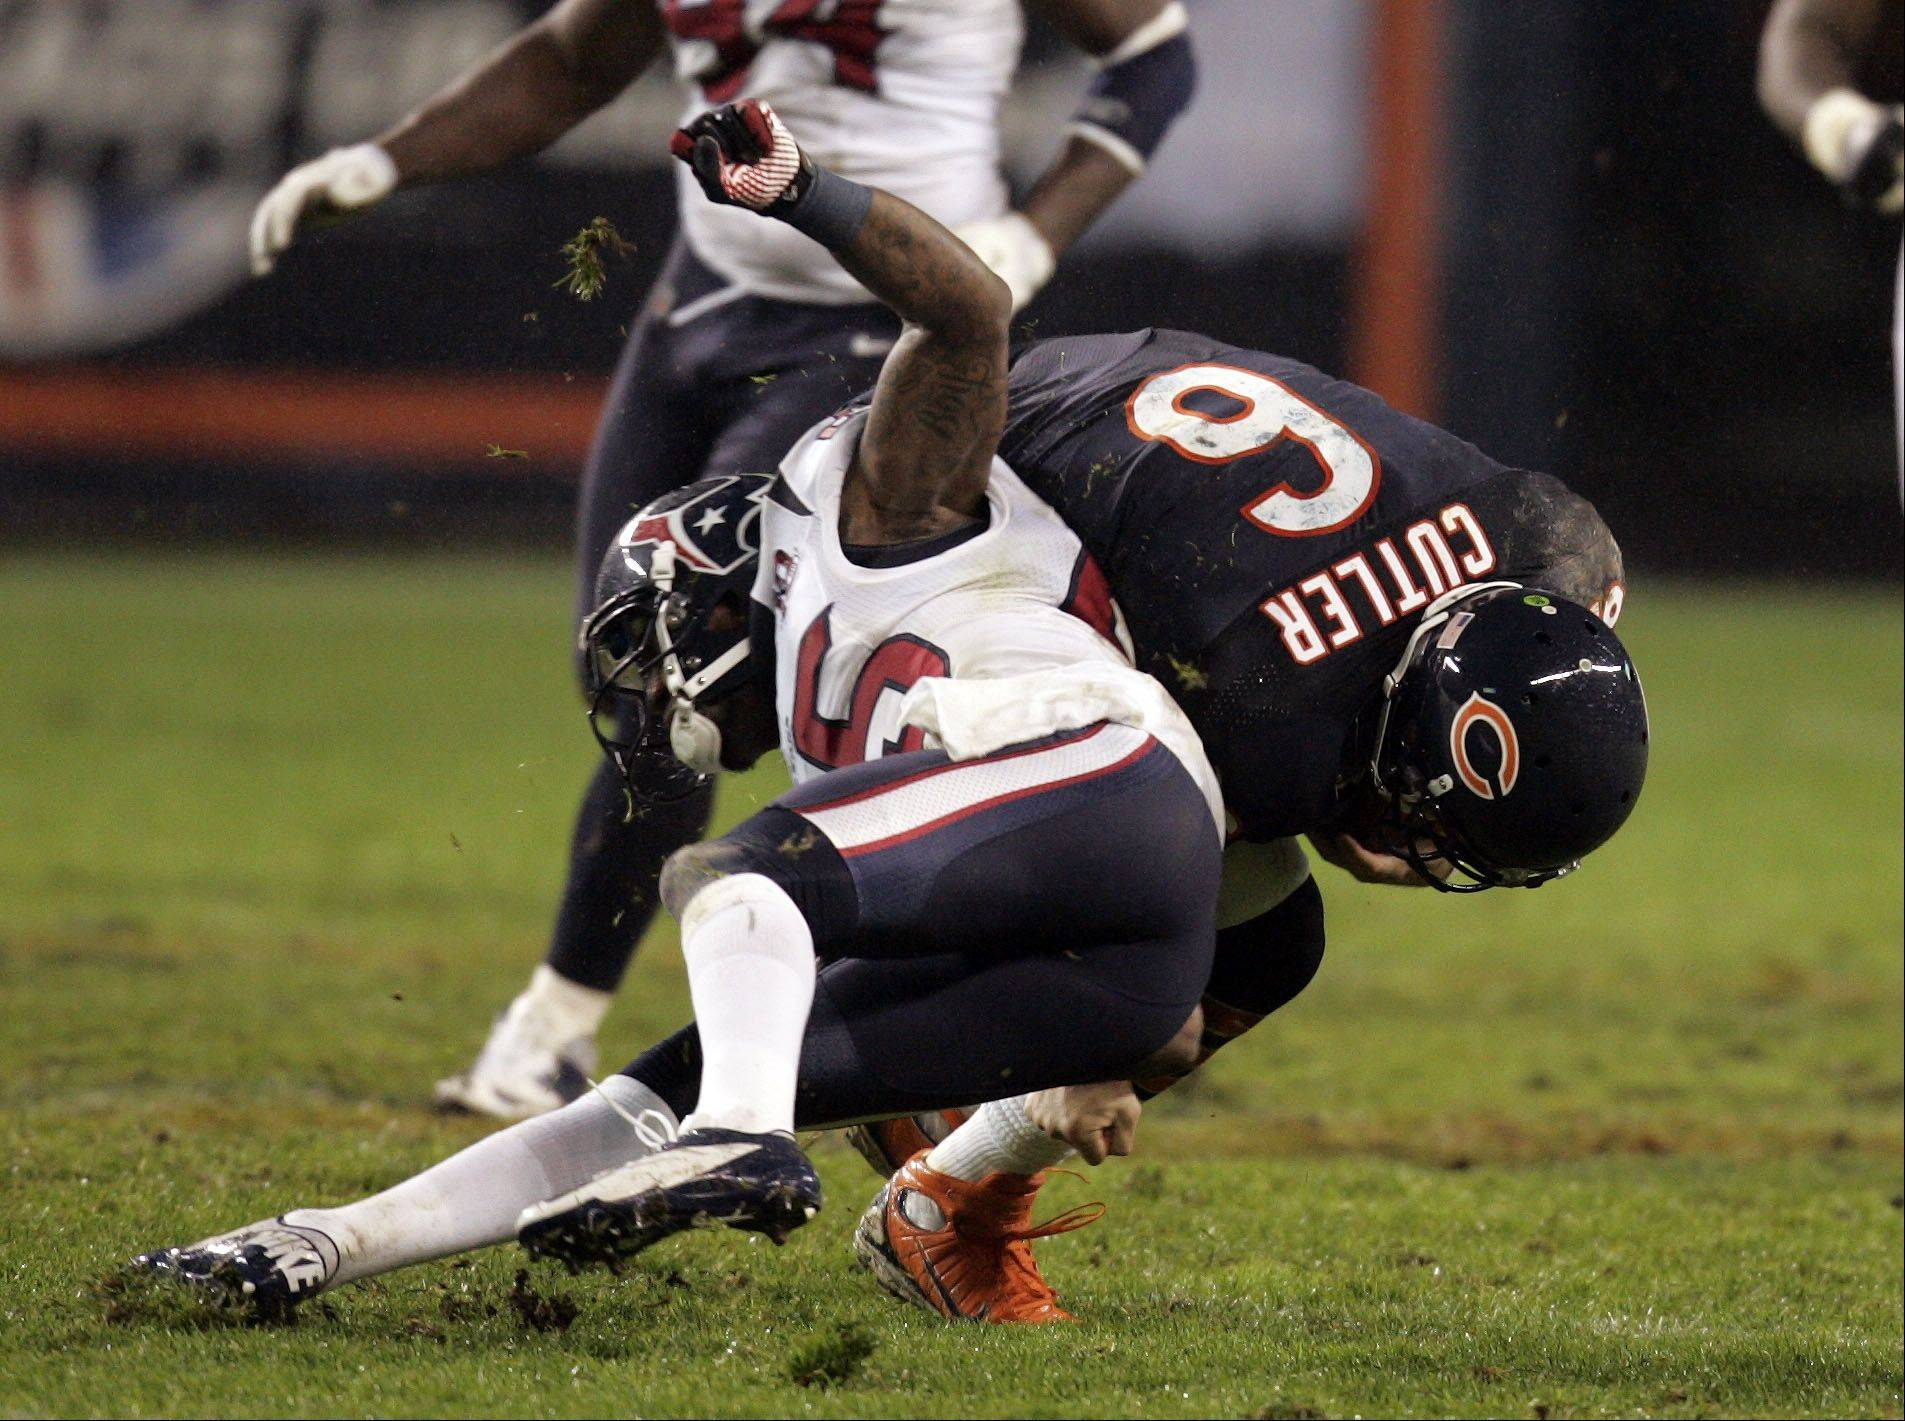 Chicago Bears quarterback Jay Cutler (6) gets hit hard by Houston Texans cornerback Kareem Jackson (25) late in the first half during the game Sunday November 11, 2012 at Soldier Filed in Chicago.